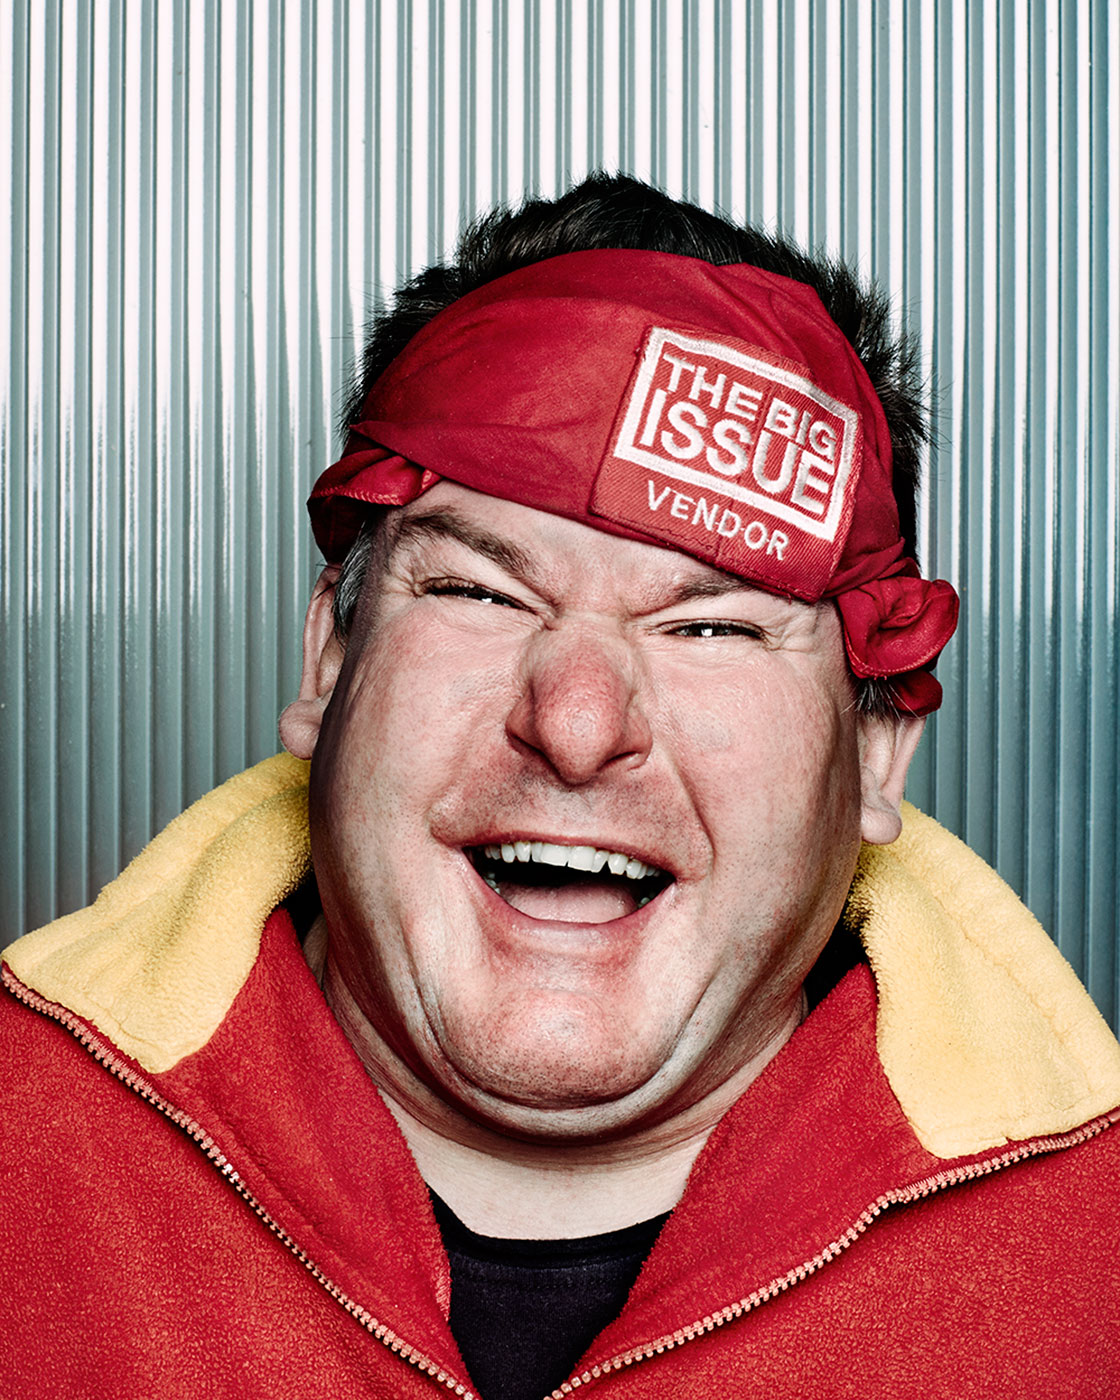 The Big Issue Magazine Vendor Steve